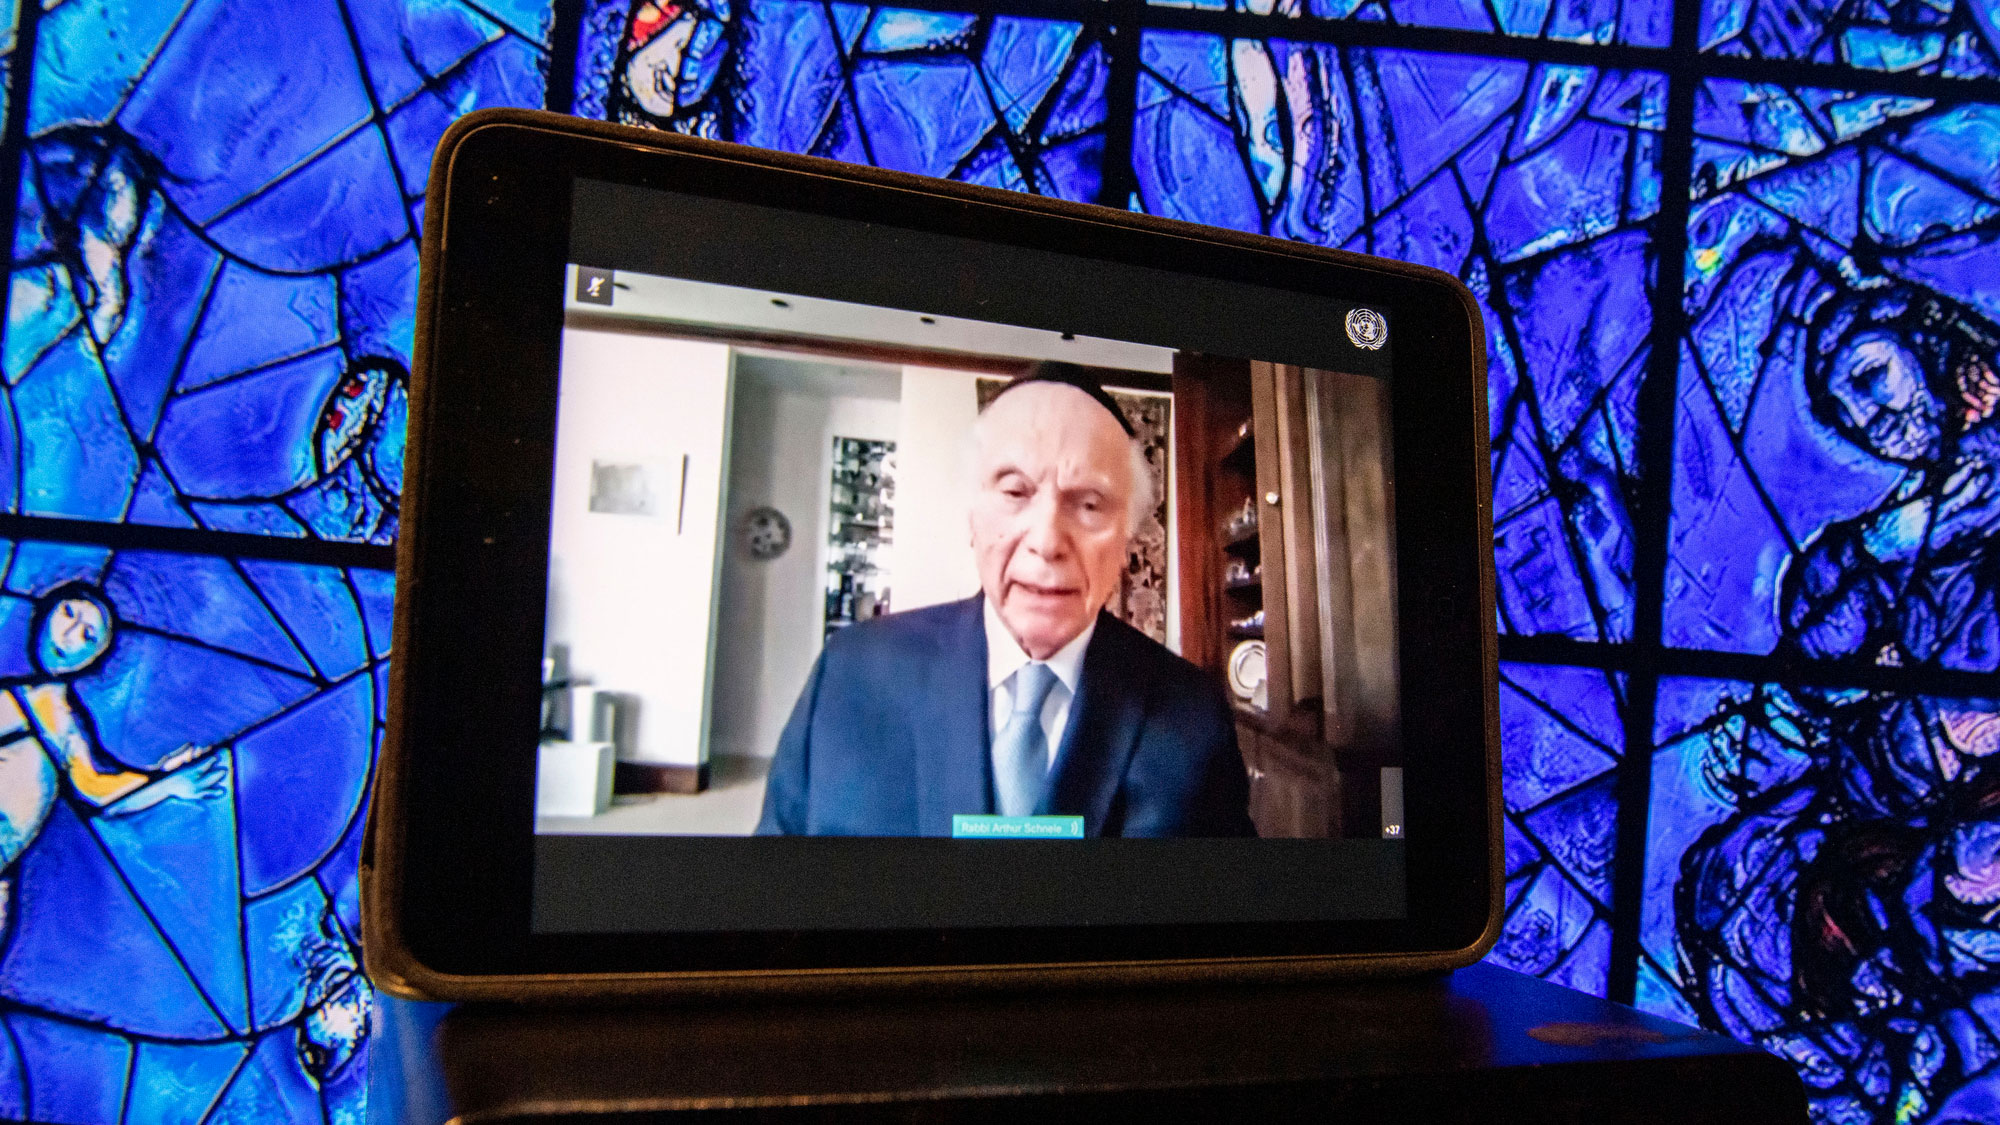 A tablet, with Rabbi Arthur Schneier on view, is leaning against Marc Chagall's colorful stained glass window at UNHQ.